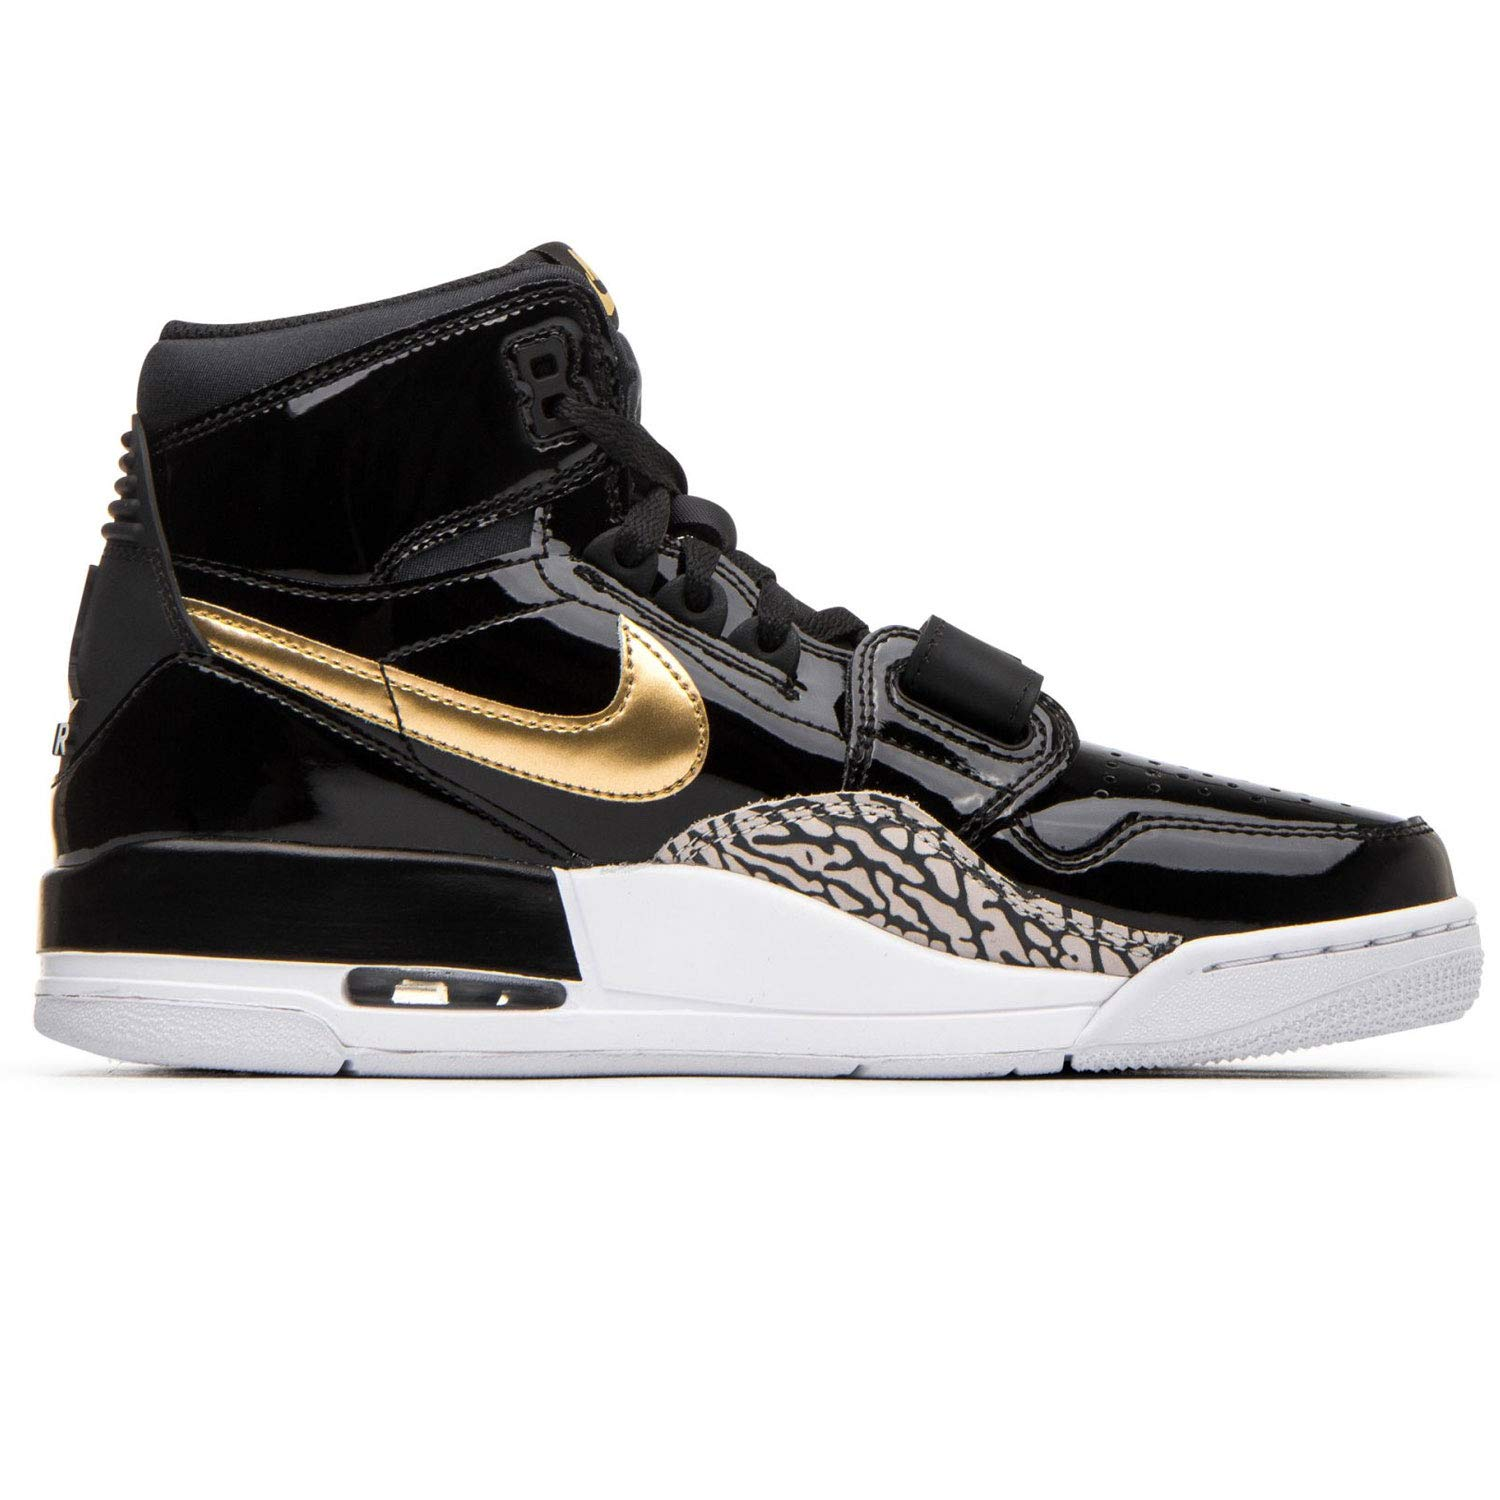 sports shoes 68031 56016 Nike Jordan Legacy 312 - AV3922-007 - Size 11: Amazon.ca ...